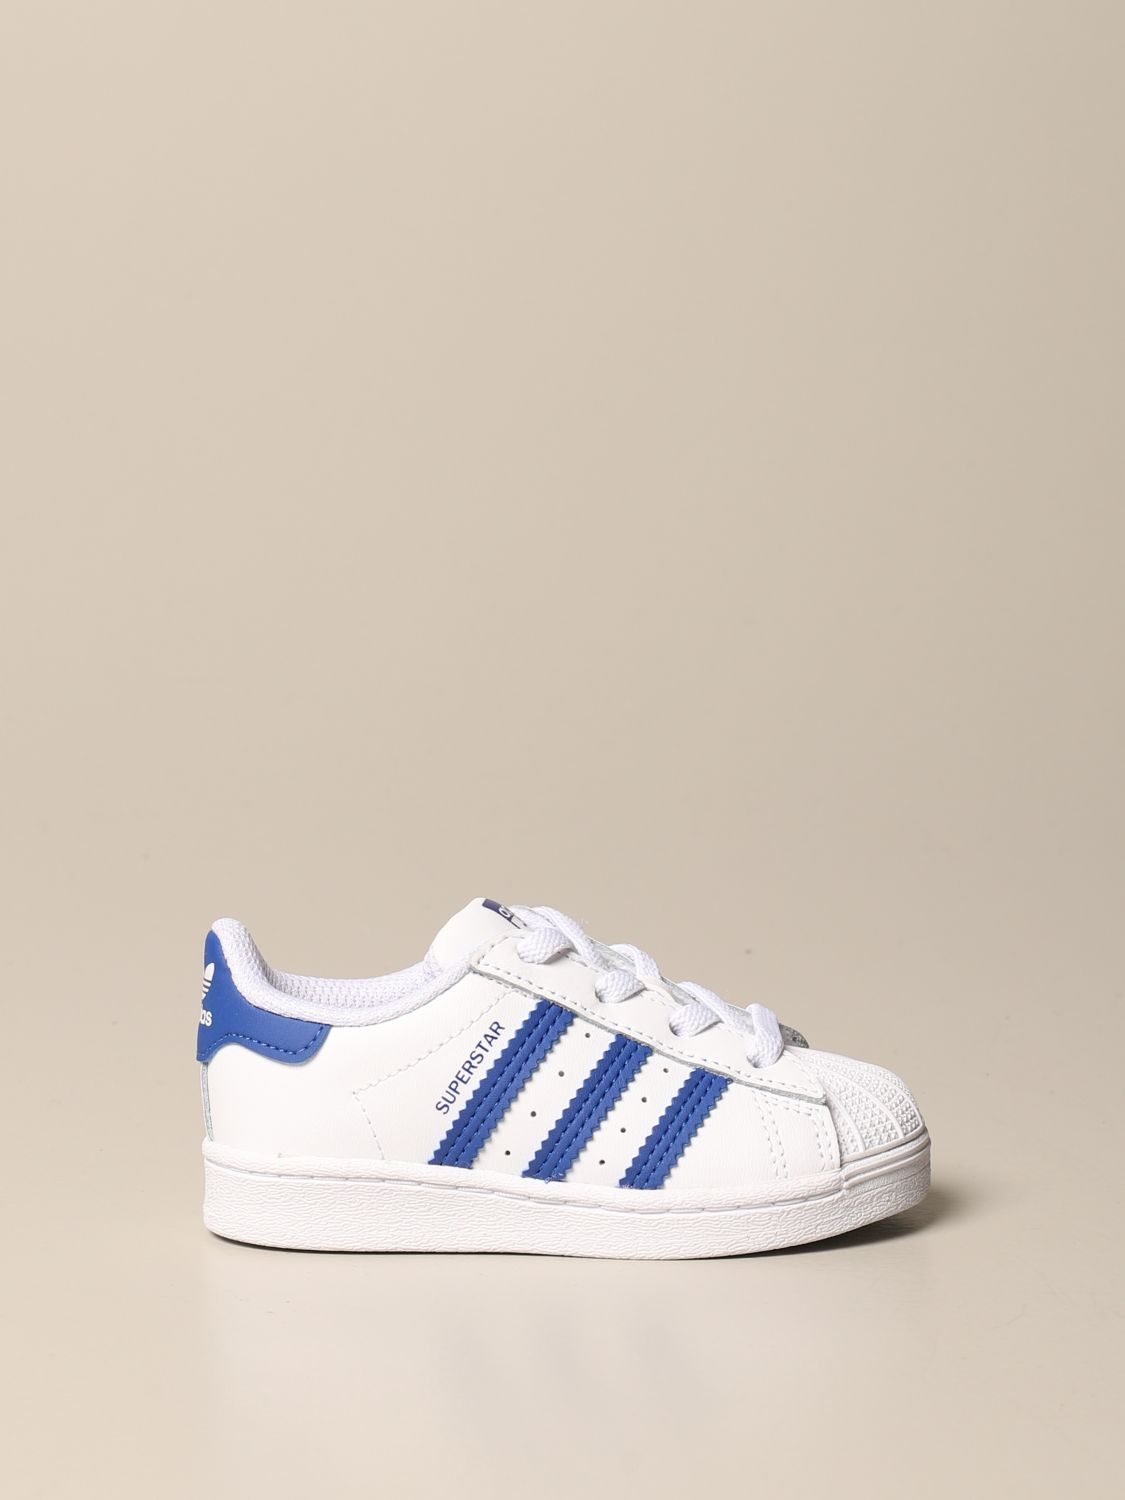 Scarpe Adidas Originals: Sneakers Superstar Adidas Originals in pelle bianco 1